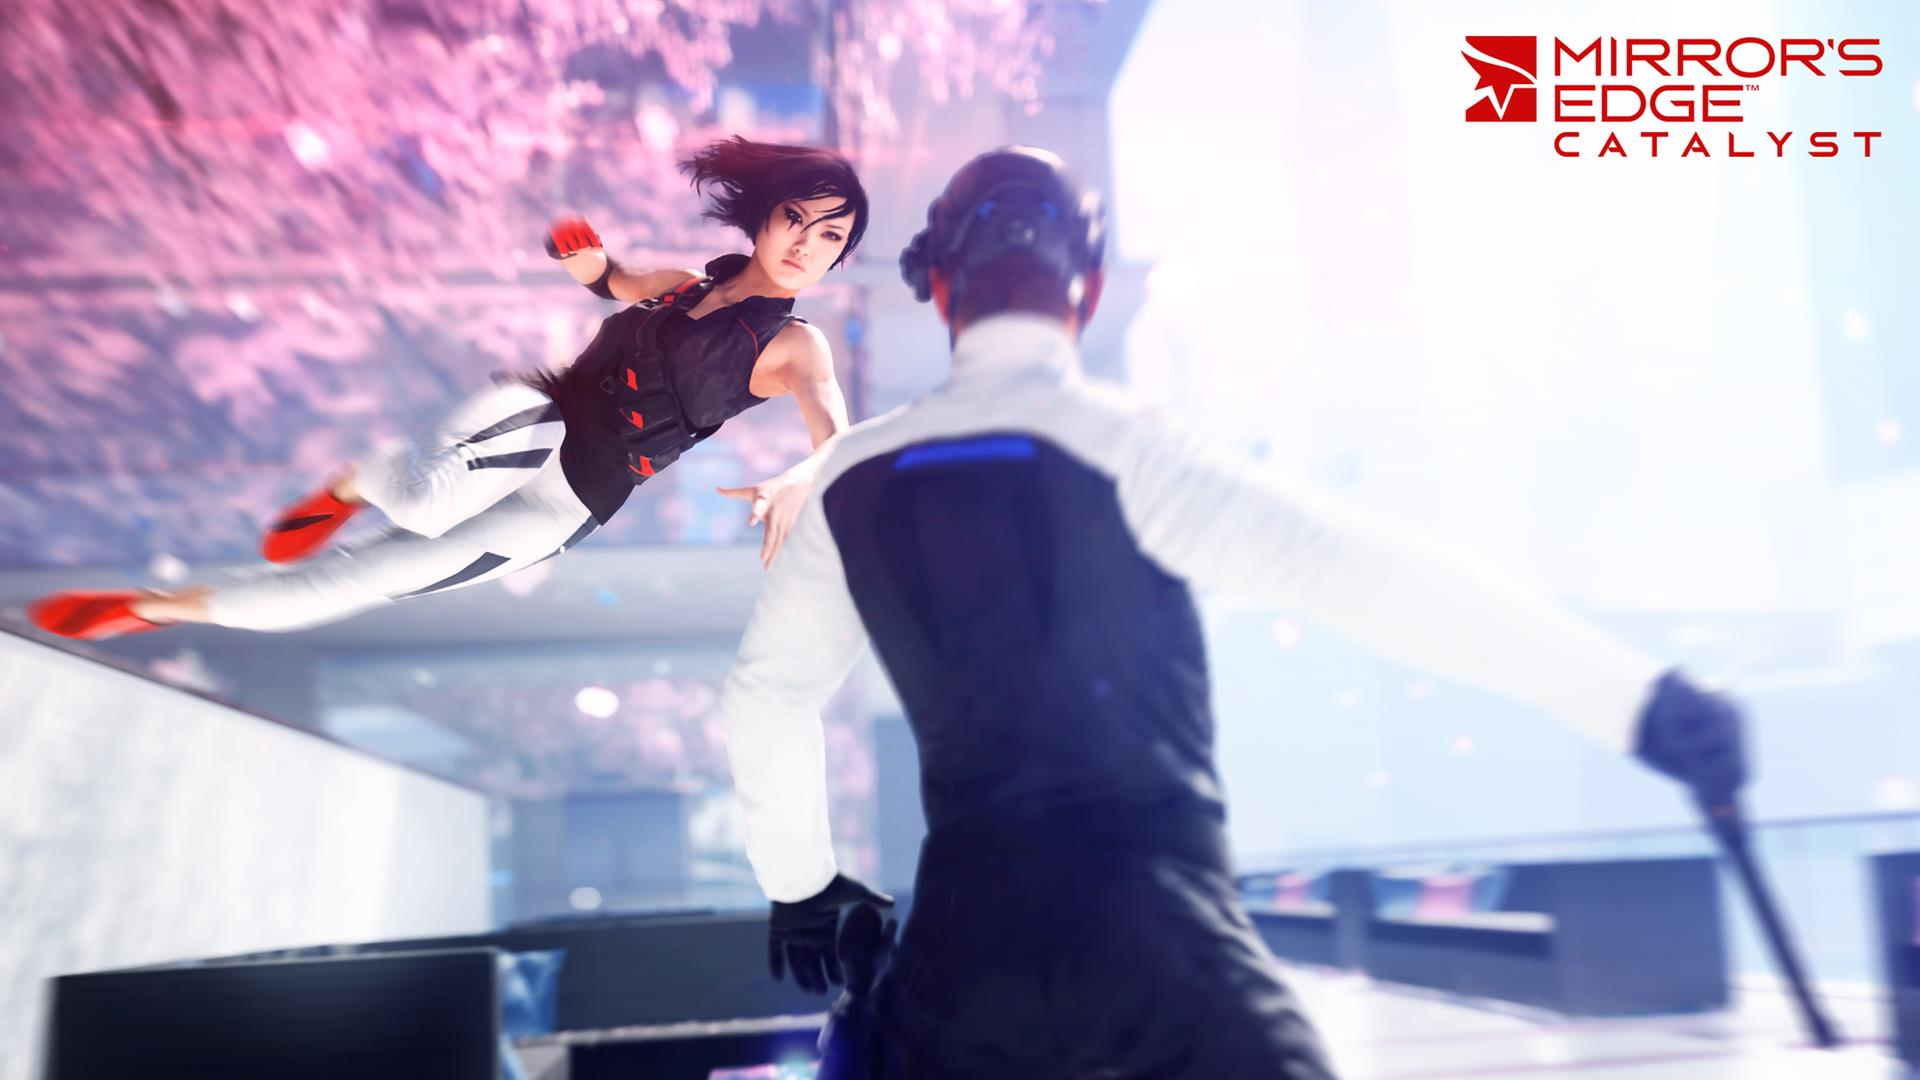 mirrors_edge_catalyst_e3_1